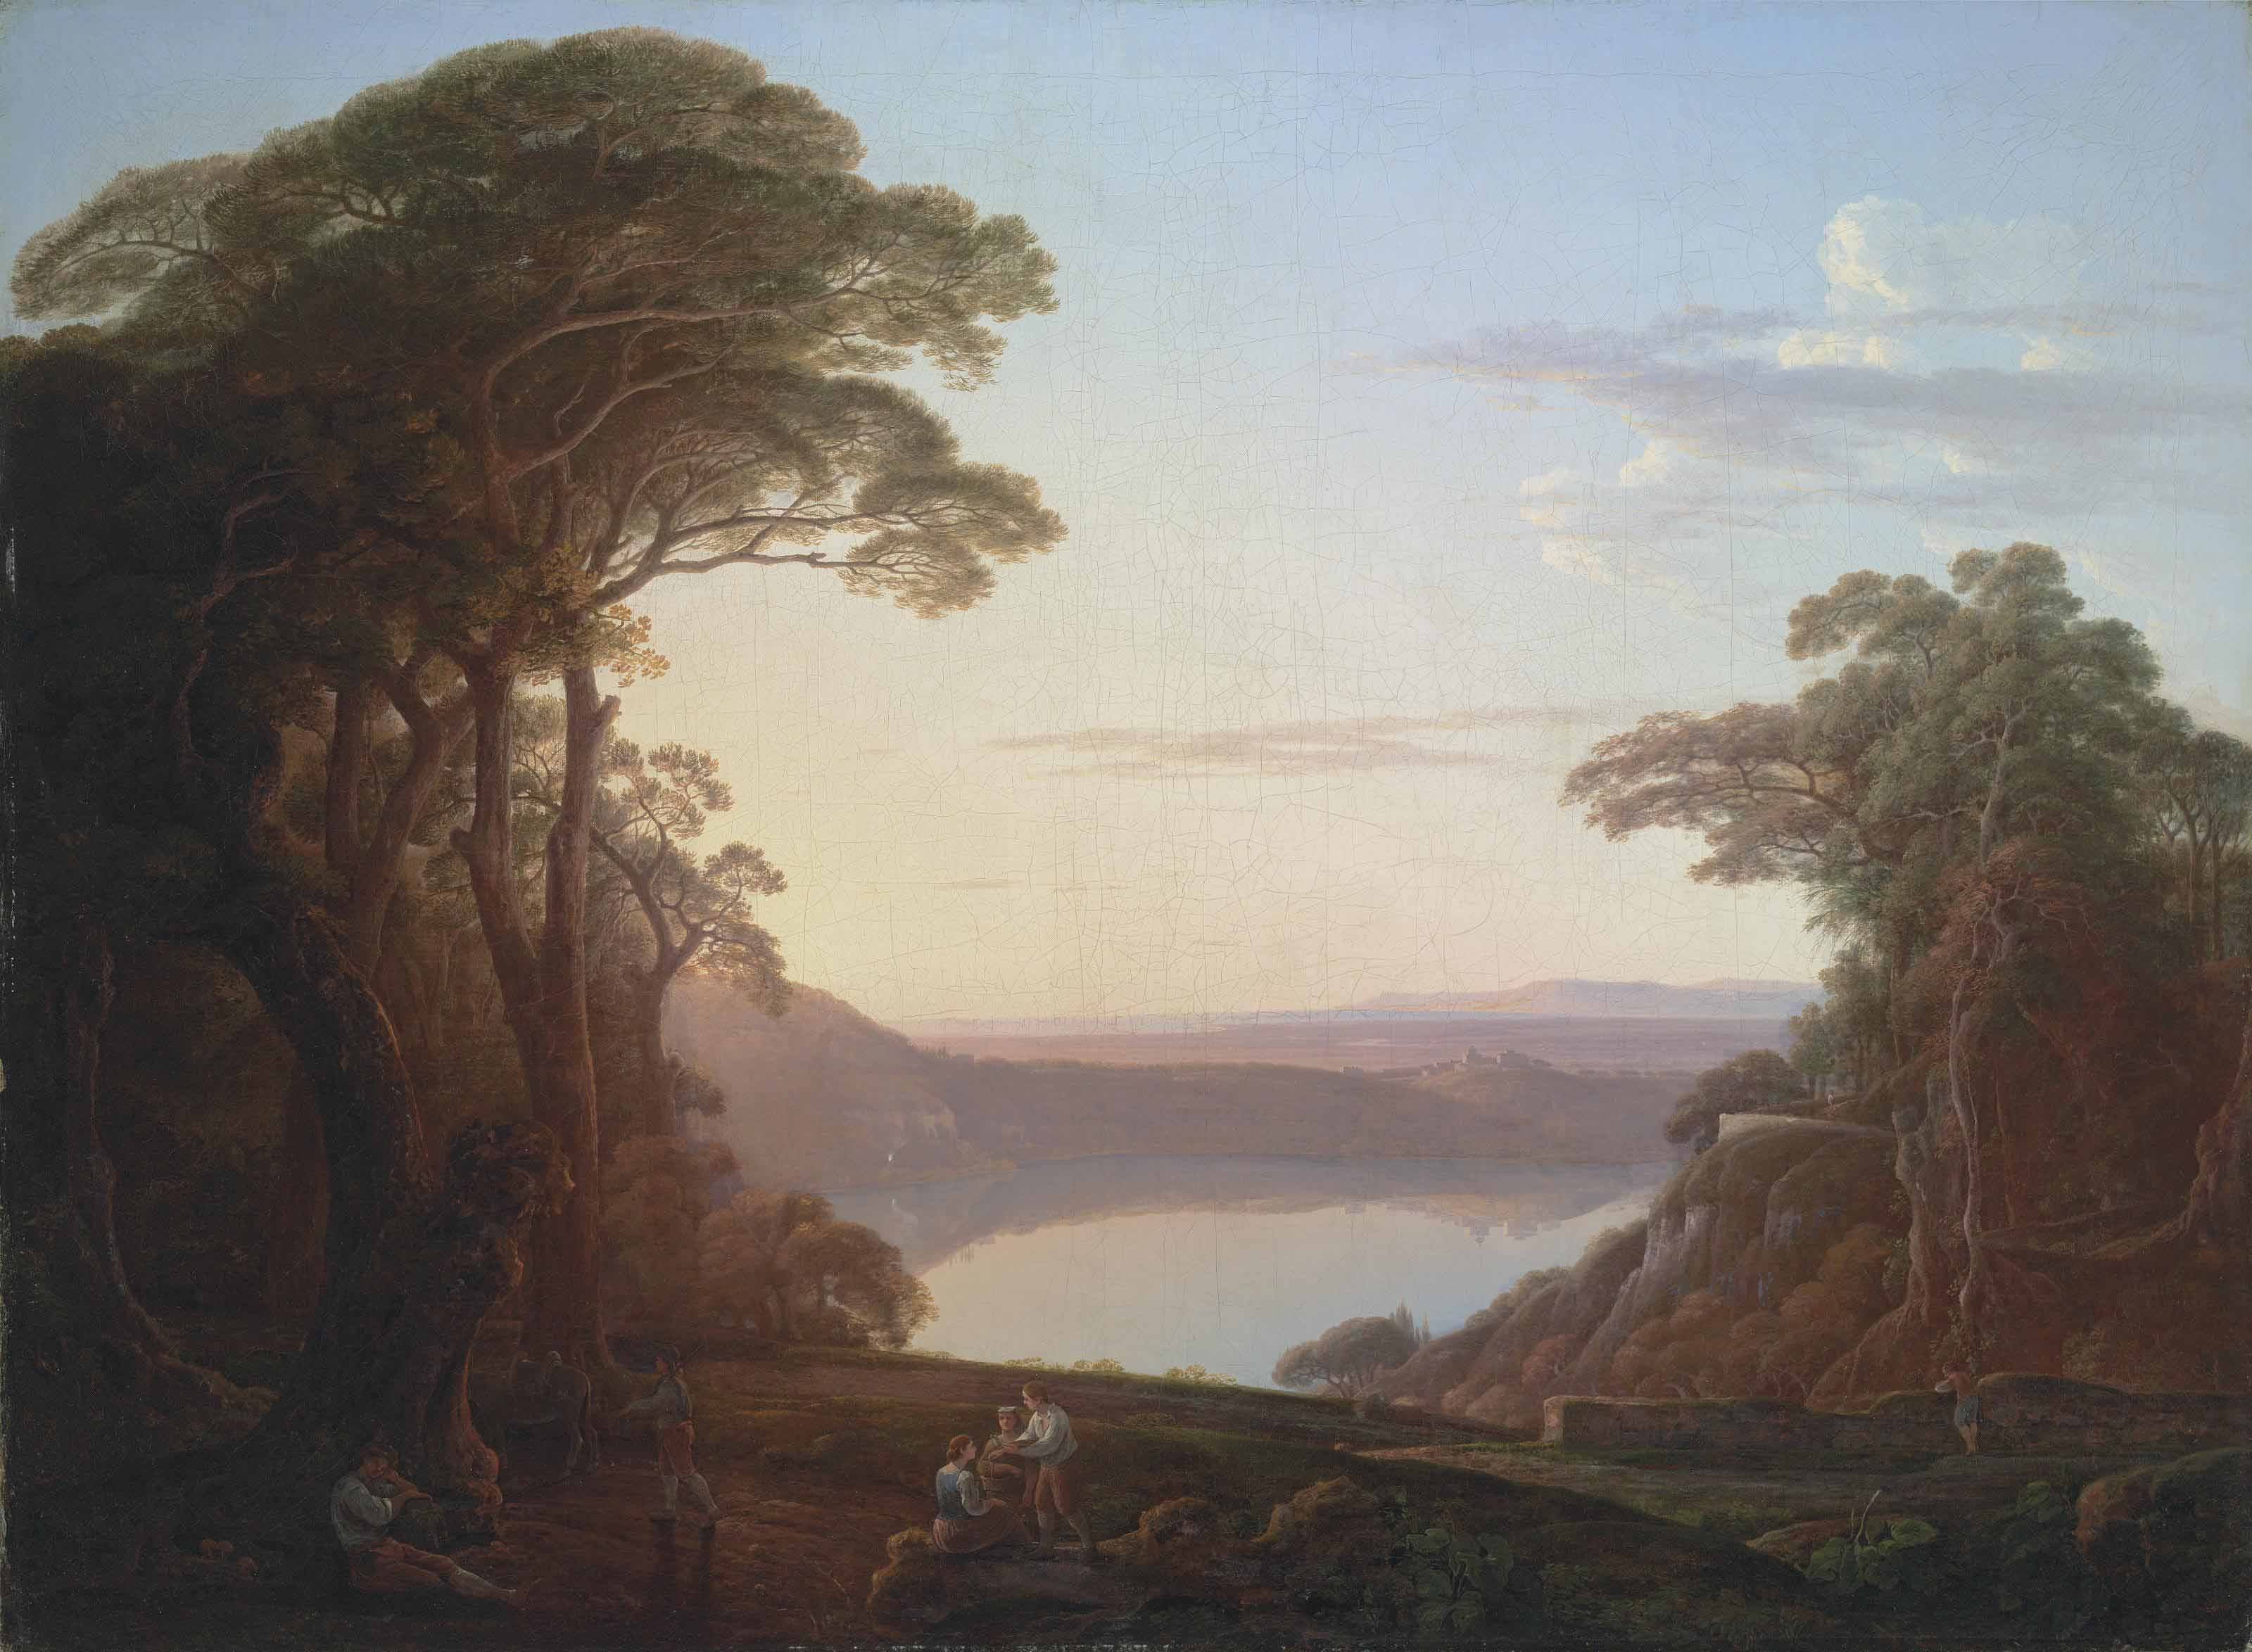 A view of Lake Albano, near Rome, with figures resting in the foreground, Castel Gandolfo beyond